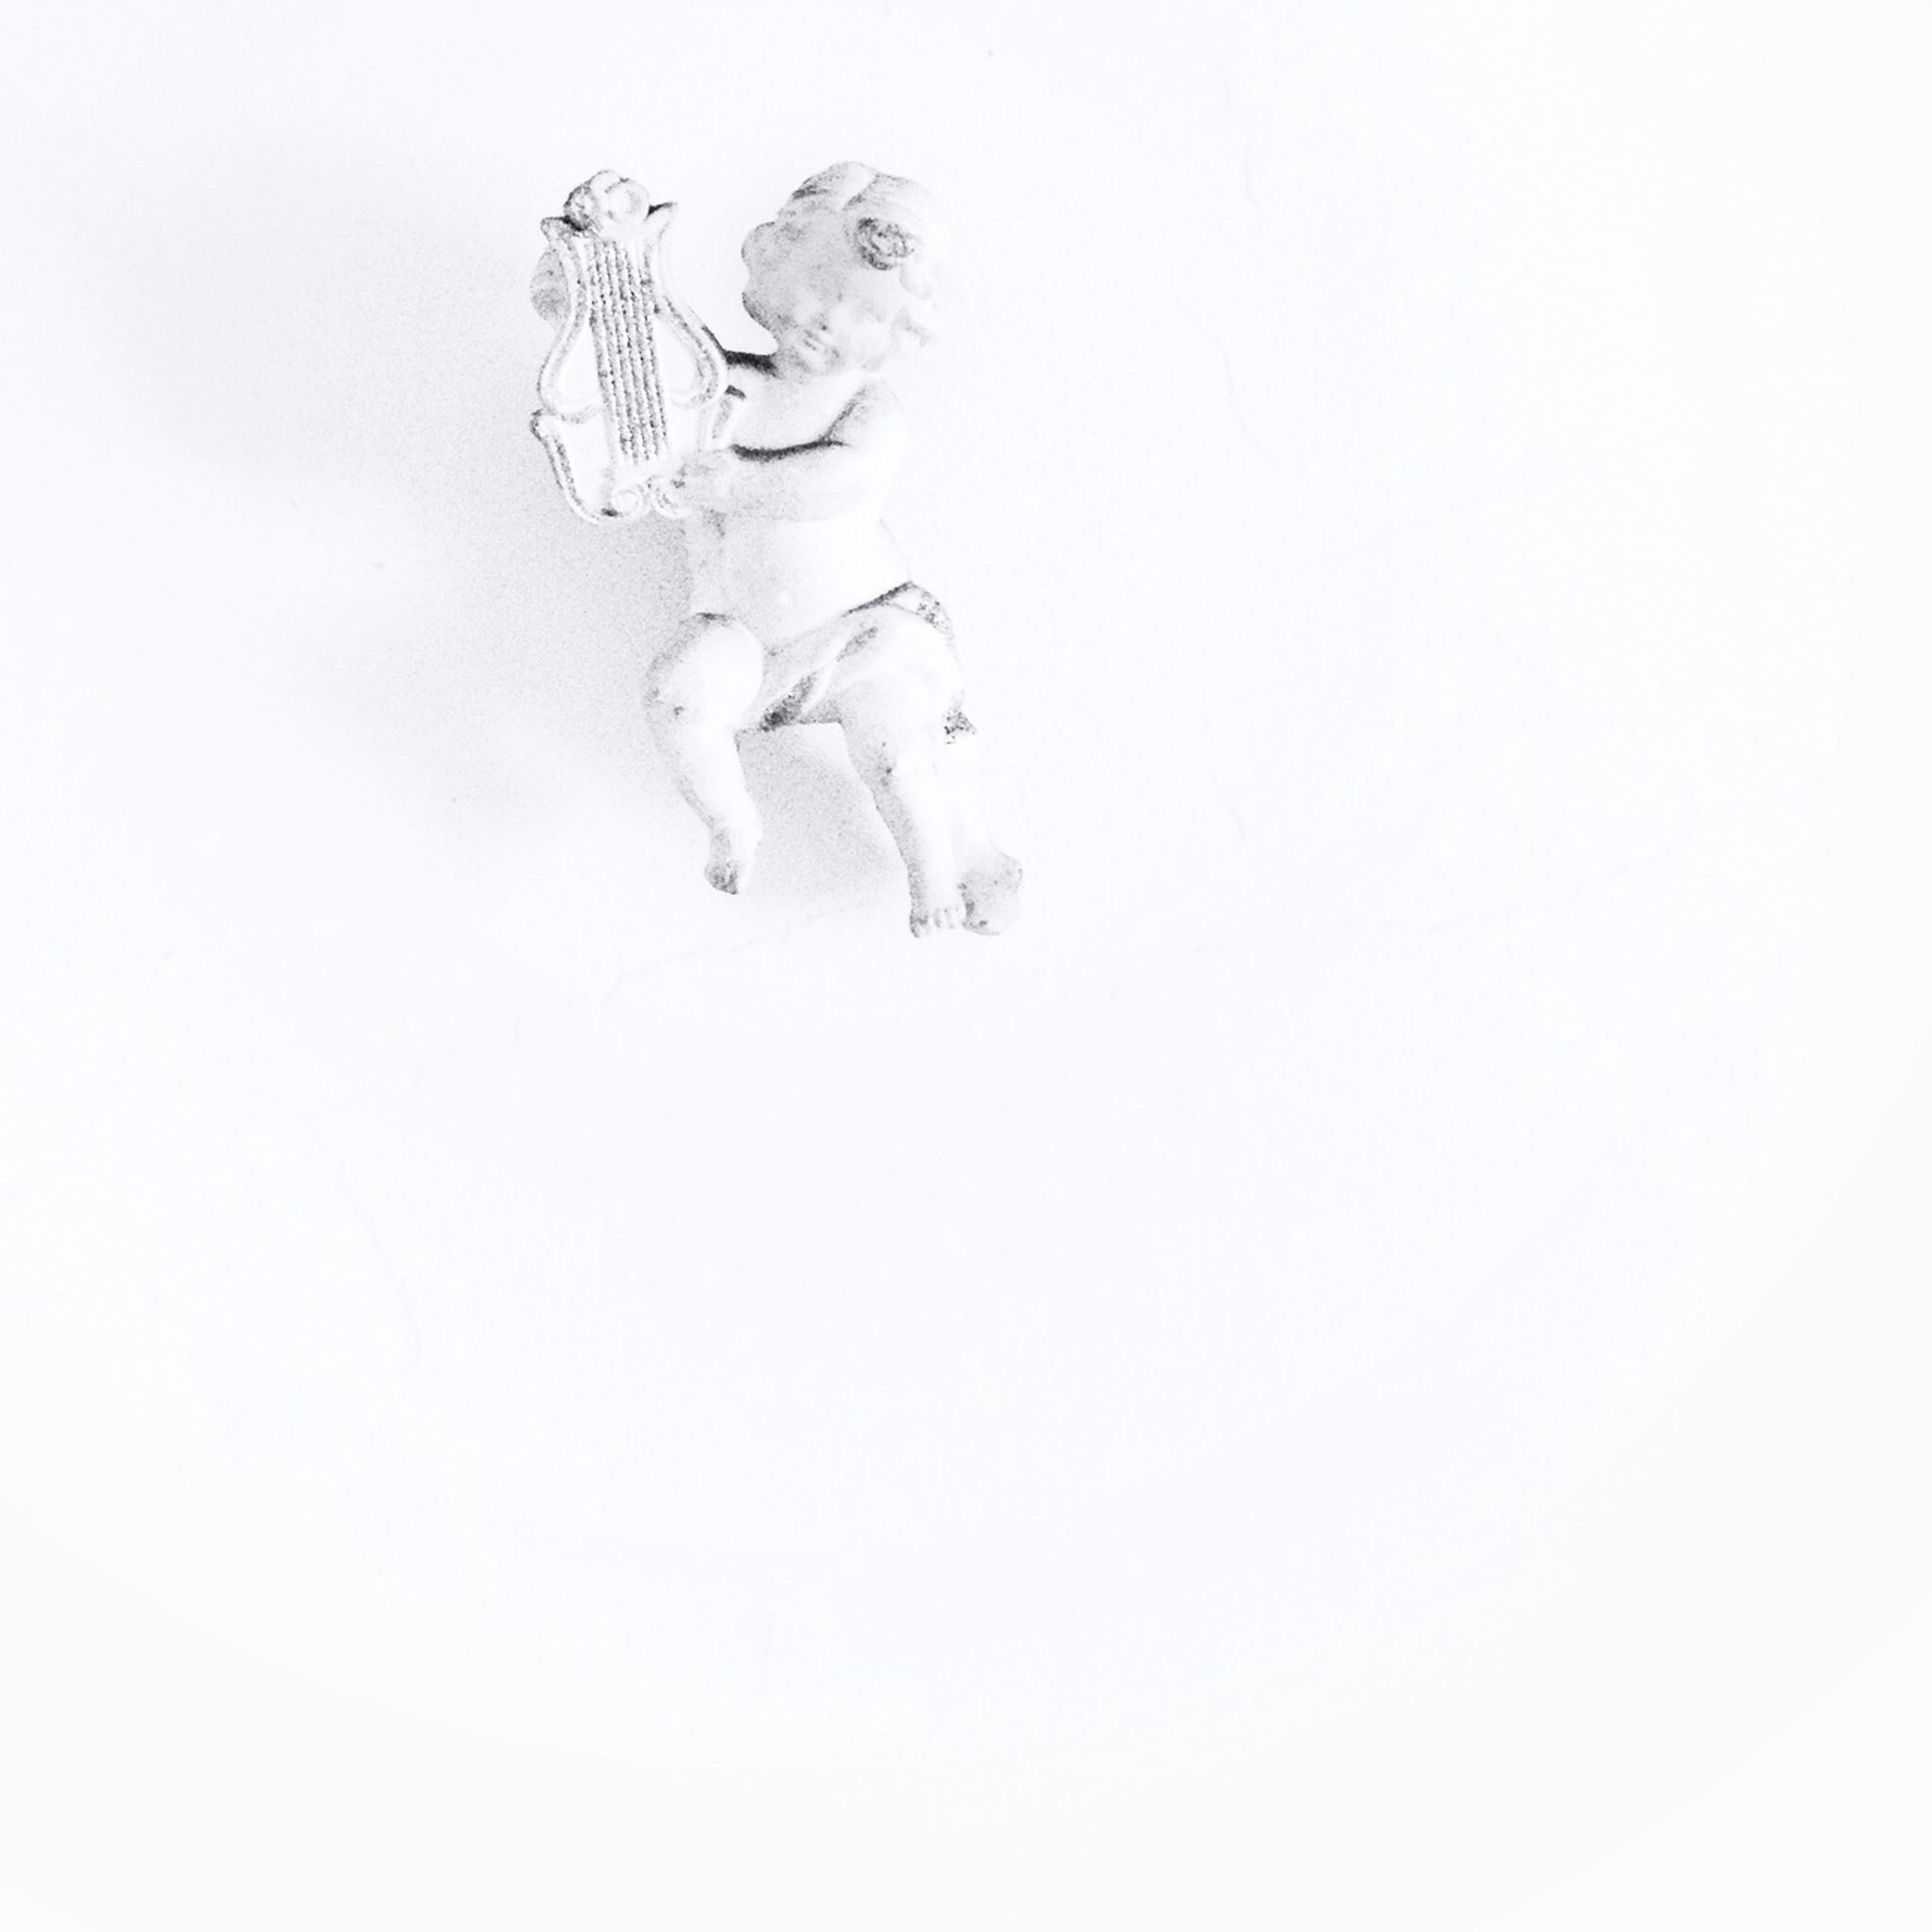 copy space, white background, studio shot, nature, no people, weather, tranquility, white color, low angle view, text, cold temperature, art, creativity, close-up, beauty in nature, backgrounds, full frame, day, western script, clear sky